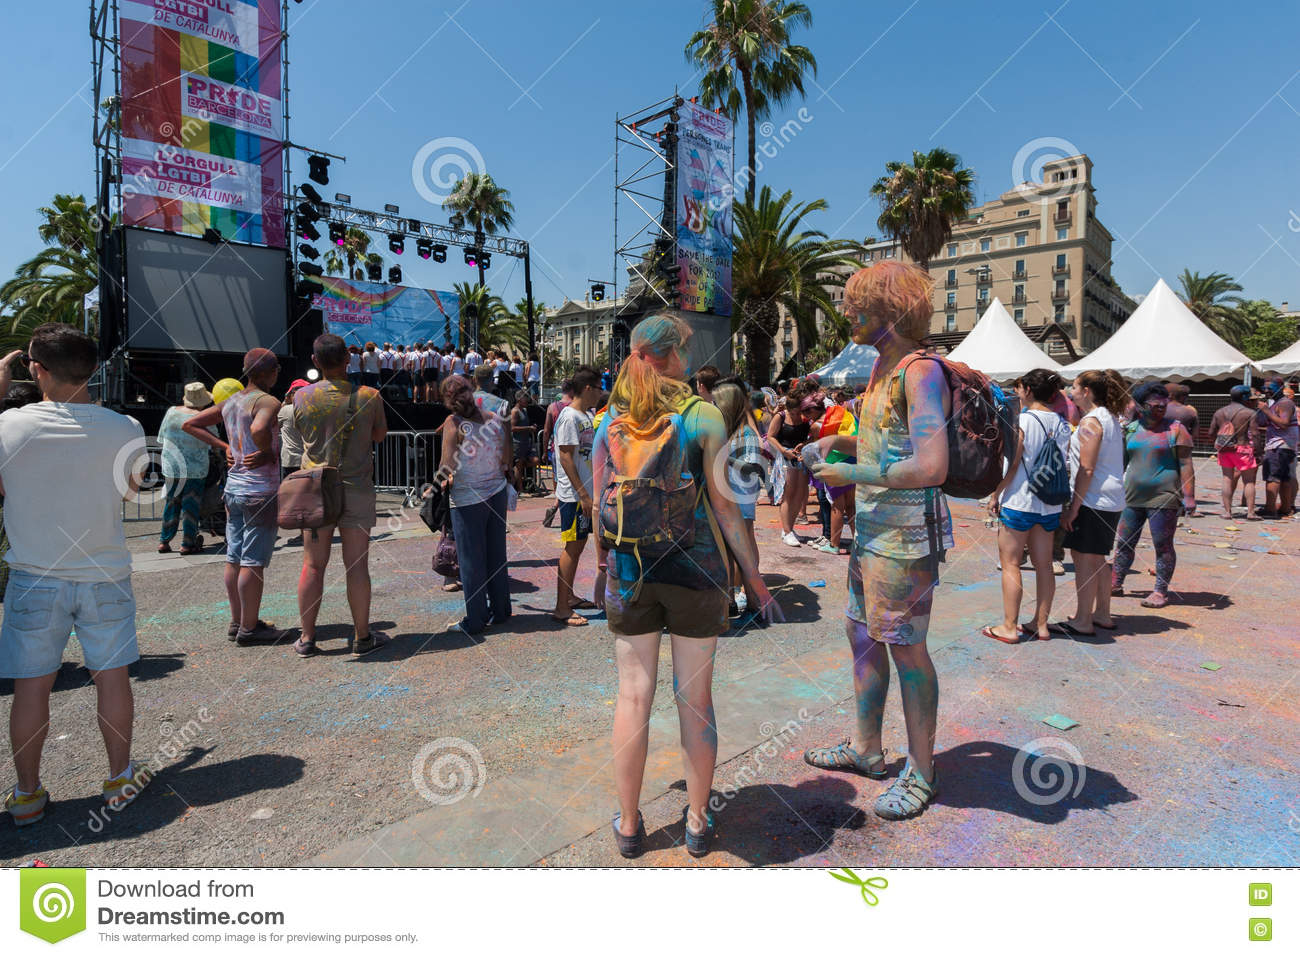 BARCELONA, SPAIN - JULY 9, 2014: Holi festival